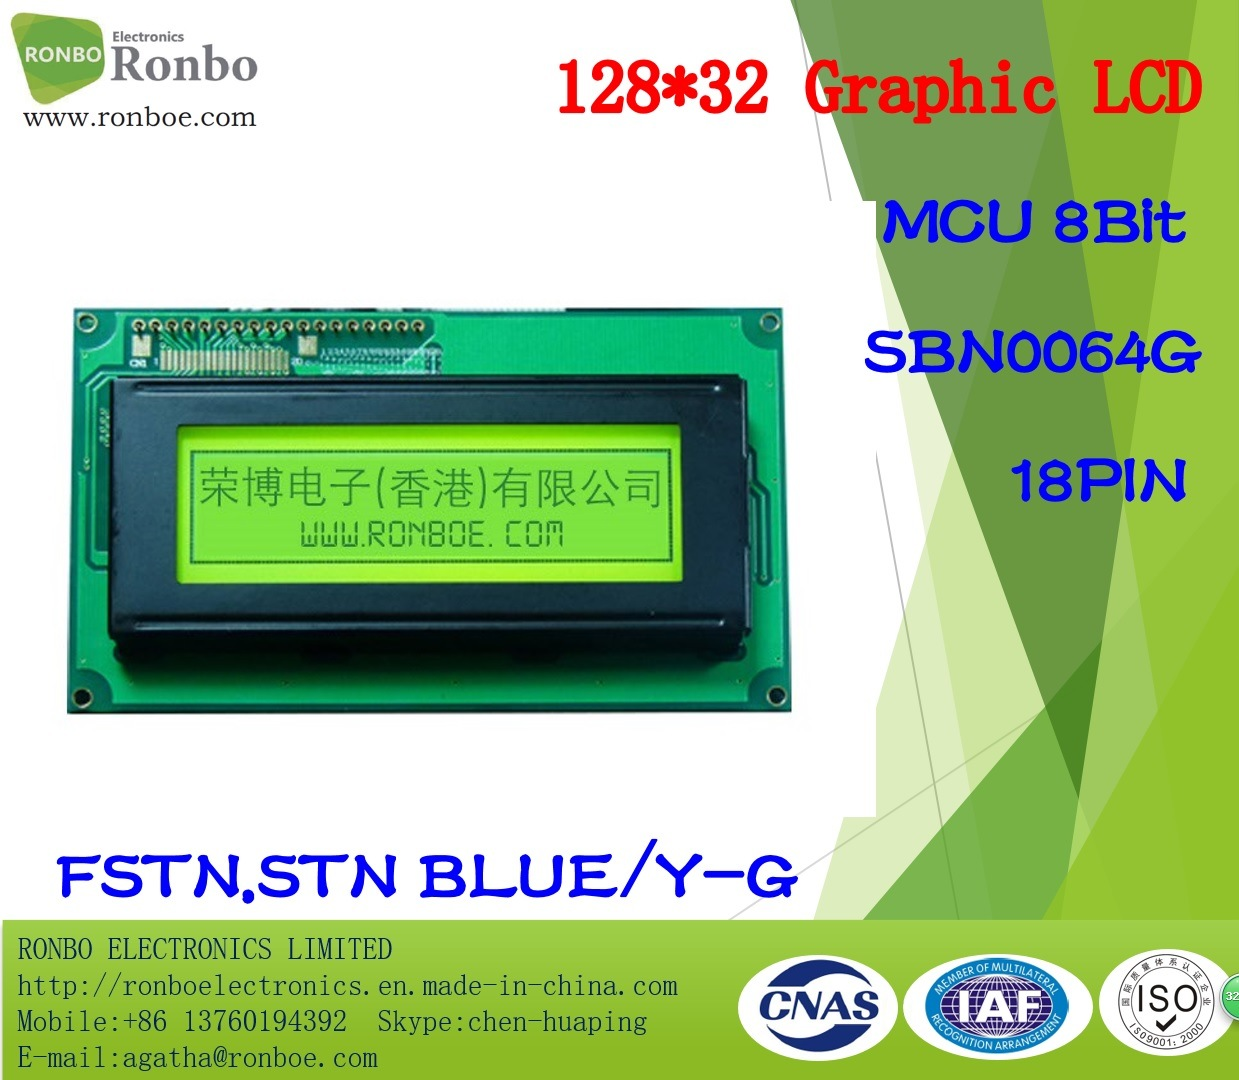 128X32 Graphic LCD Panel, MCU 8bit, COB LCD Display, Graphic LCM Monitor